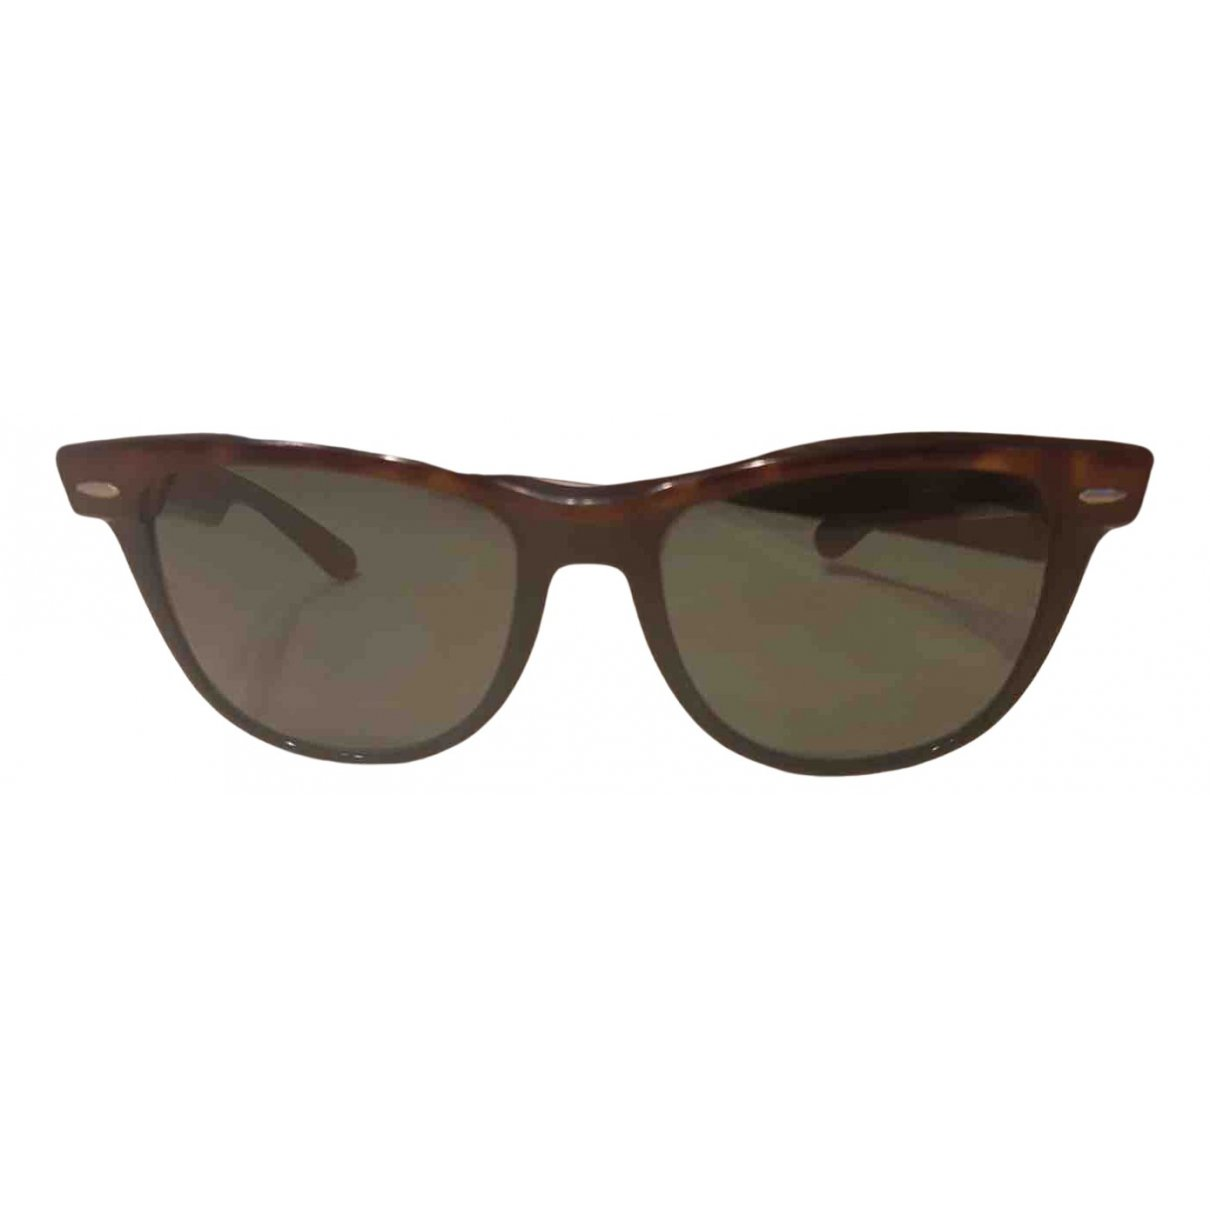 Ray-ban Original Wayfarer Brown Sunglasses for Men